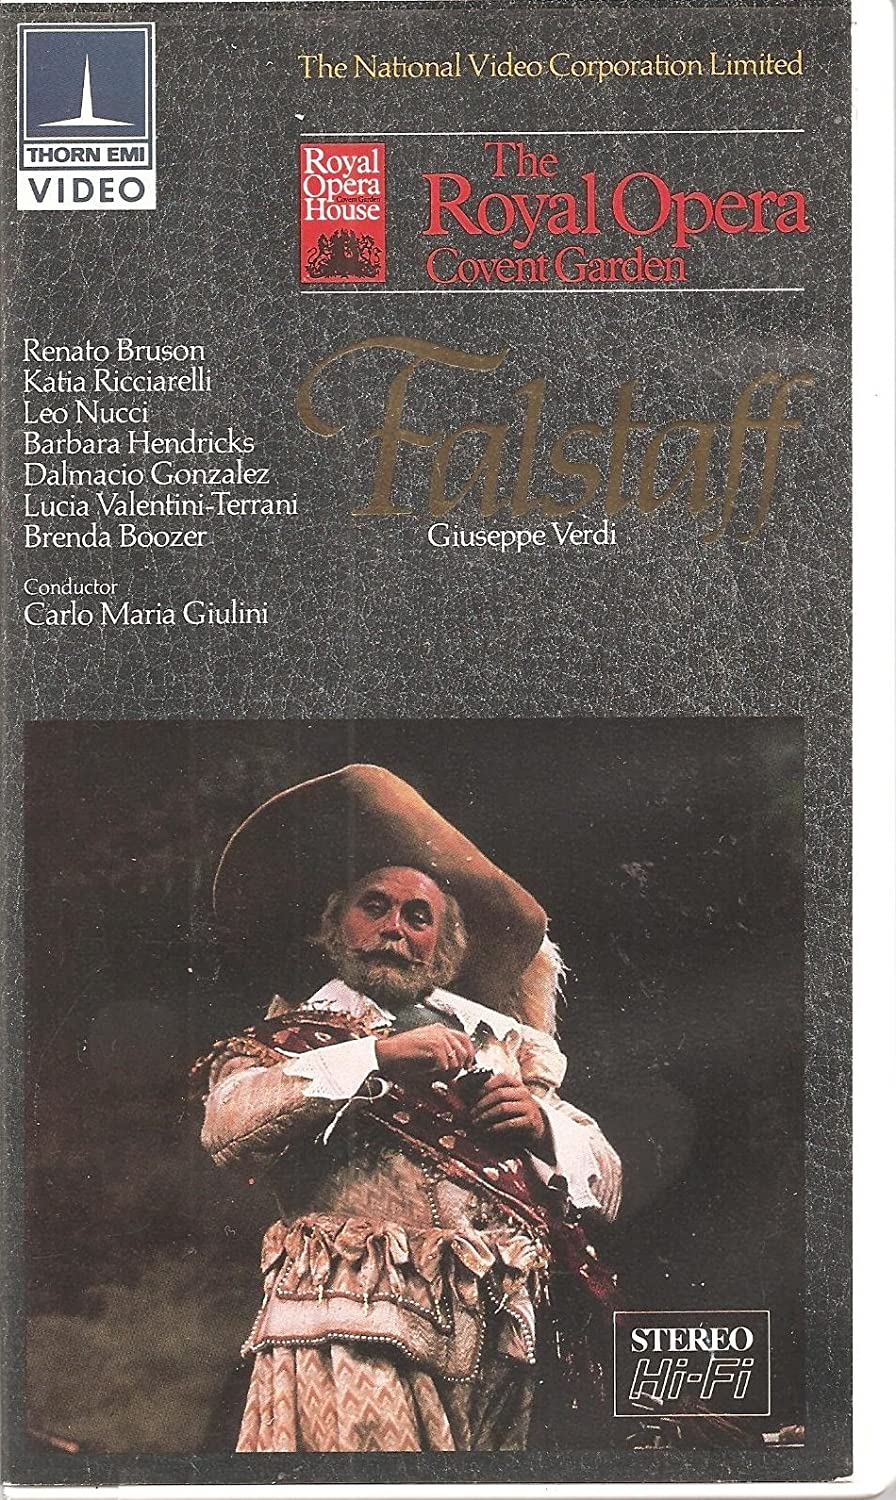 The Royal Opera House Covent Garden Presents: Giuseppe Verdi's Falstaff [w/ Synopsis Guide and Complete Text] (English Subtitles)